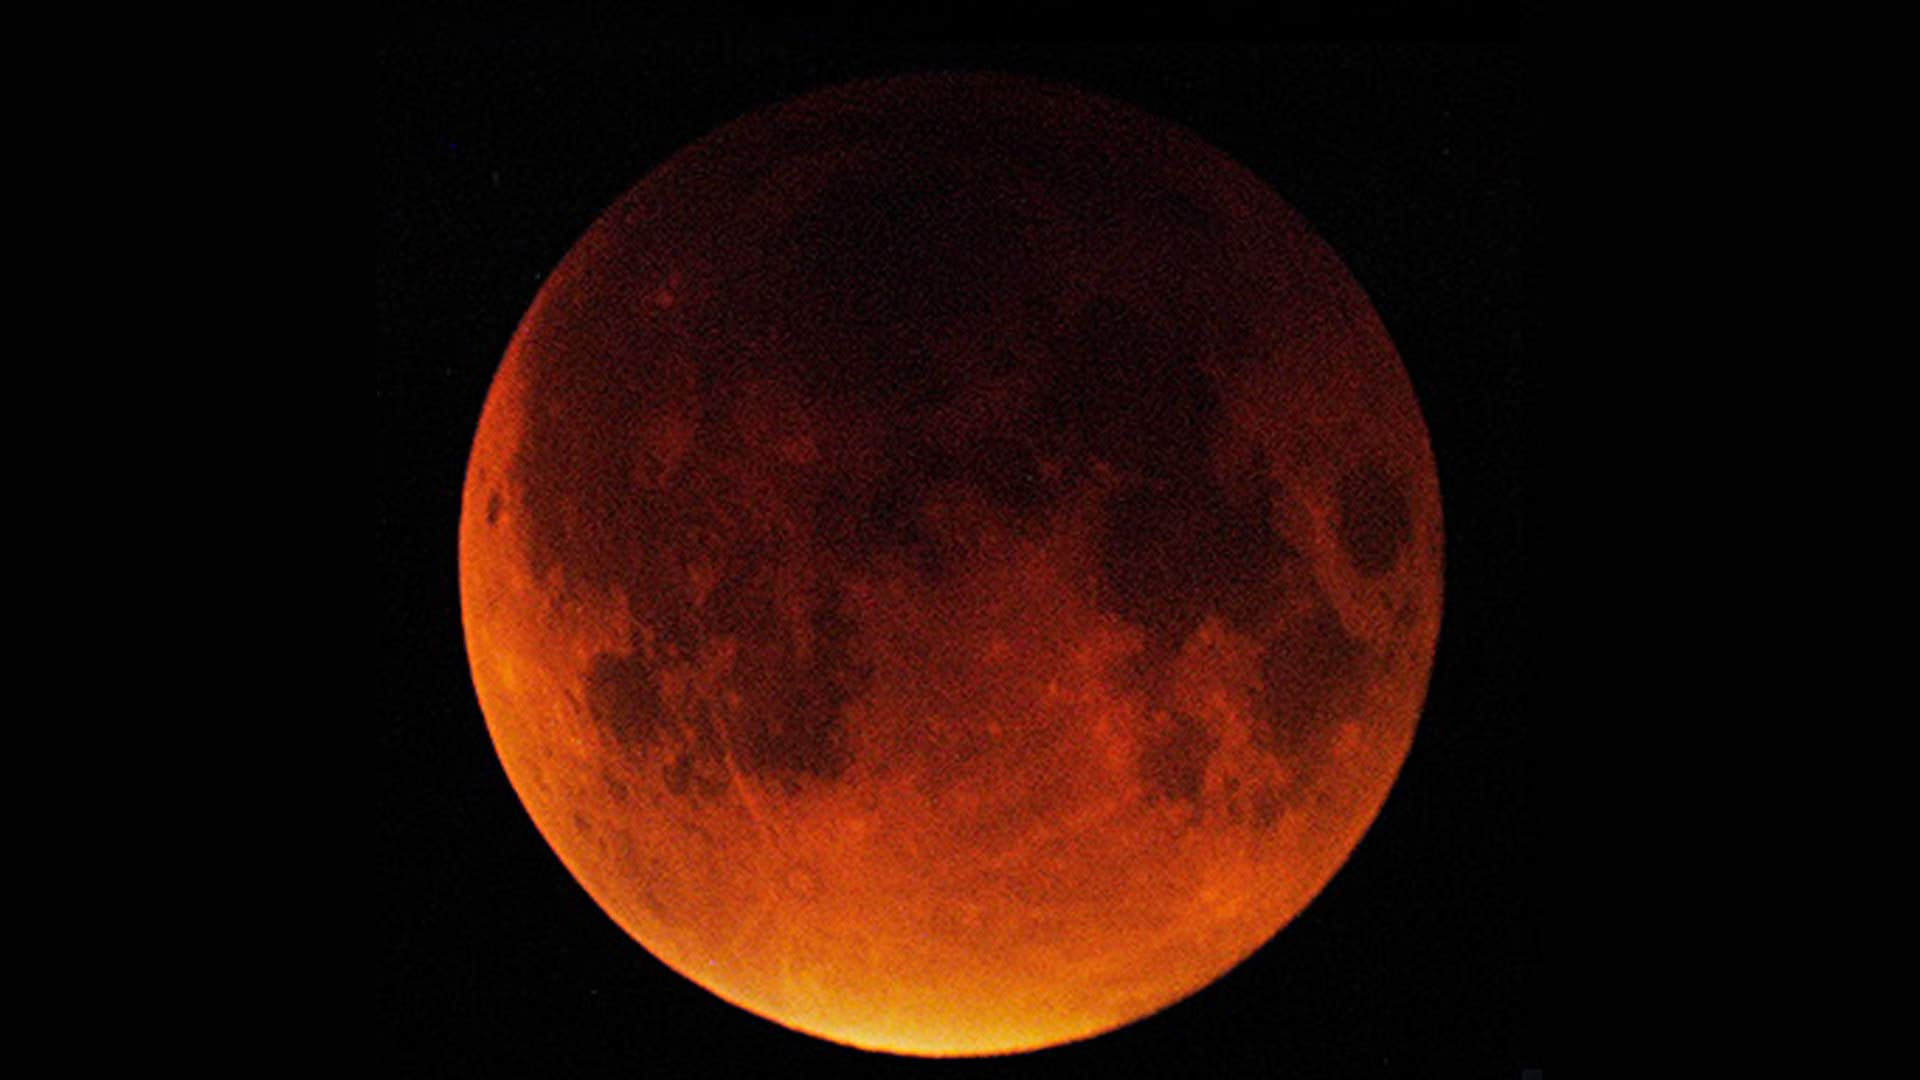 The full moon in total eclipse, Sept. 27, 2015. Photographed in Tucson, Arizona, by Steward Observatory astronomer Glenn Schneider.